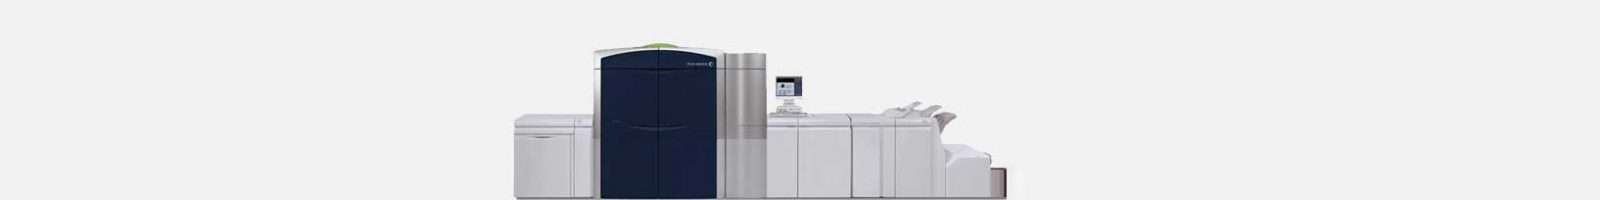 Commercial Printing Services in Manhattan, New York